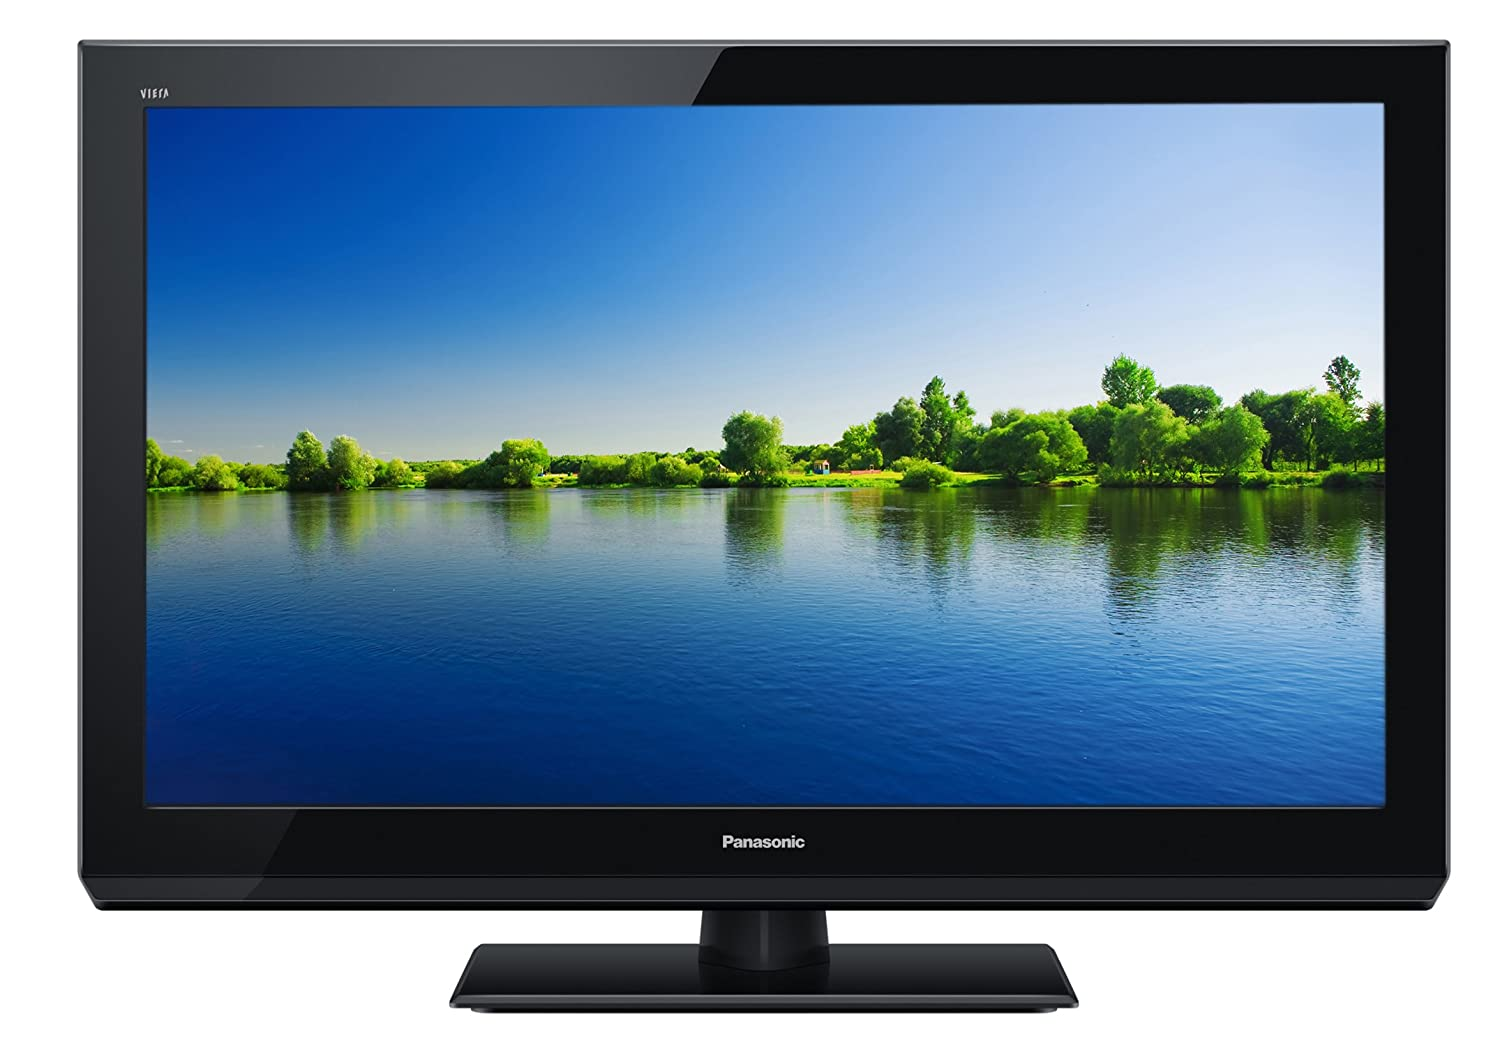 amazon com panasonic viera tc l32c5 32 inch 720p 60hz lcd tv 2012 rh amazon com Panasonic Viera TV Remote panasonic viera 32 lcd tv user manual